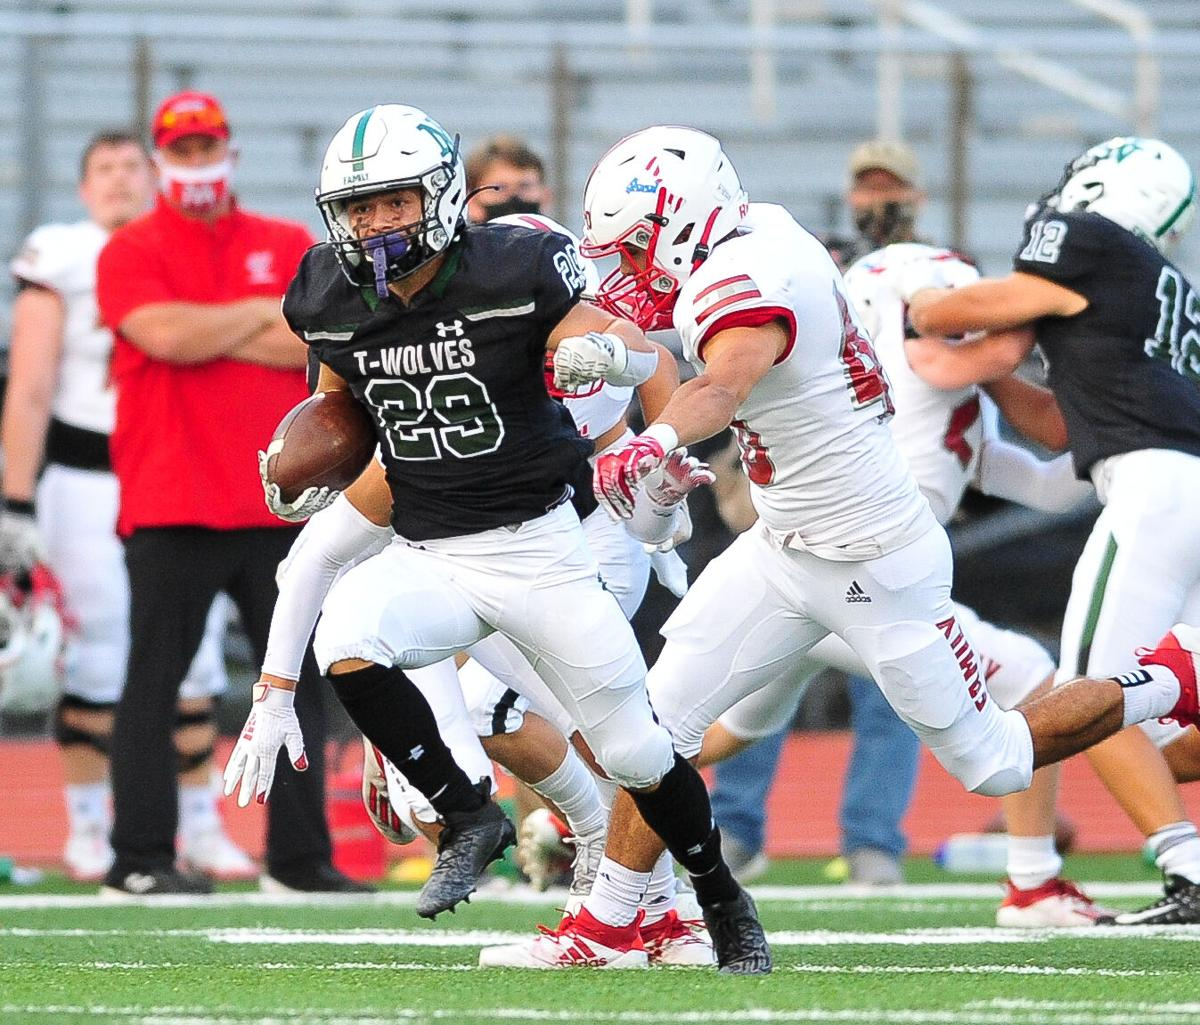 Norman North football: Short-handed T-Wolves fall to Yukon 41-24